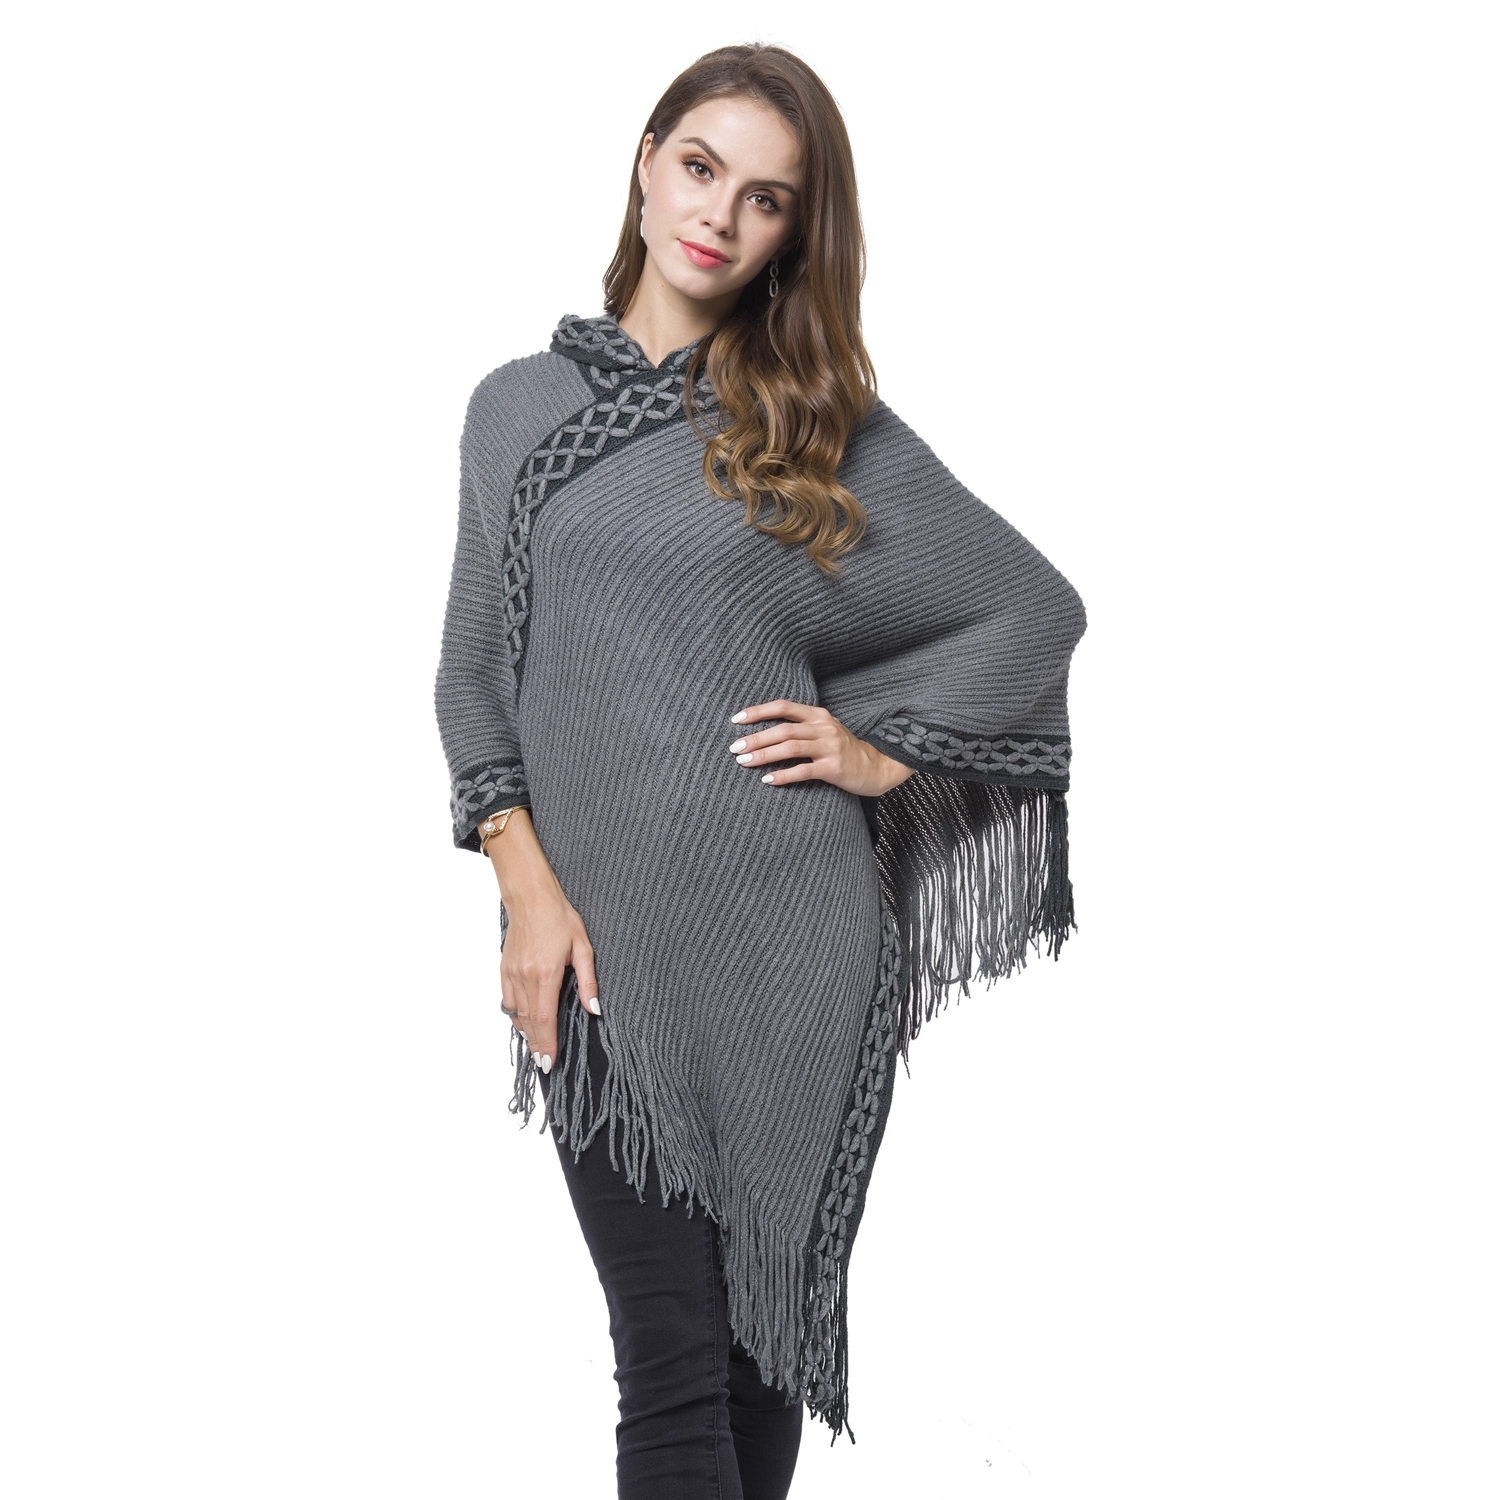 Black and grey 100 acrylic knitted pattern hooded poncho 3622 black and grey 100 acrylic knitted pattern hooded poncho 3622x3937 in 2879421 bankloansurffo Image collections